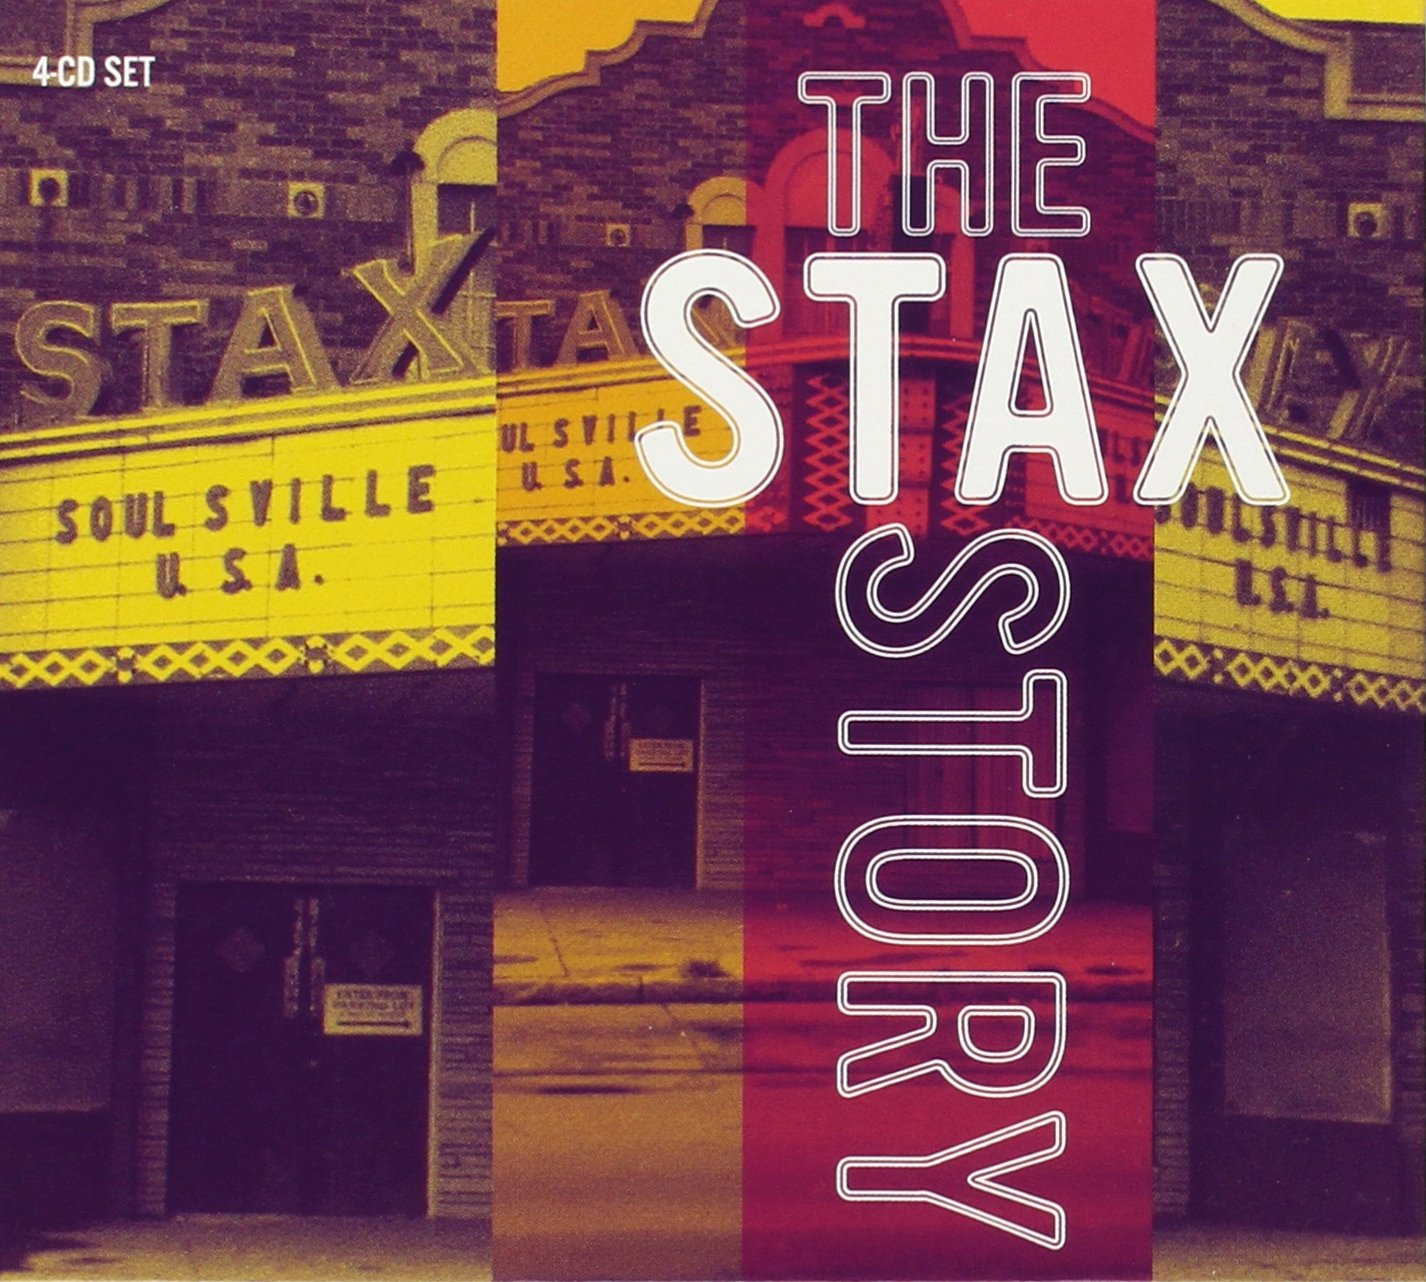 The Stax Story [4 CD] by Stax